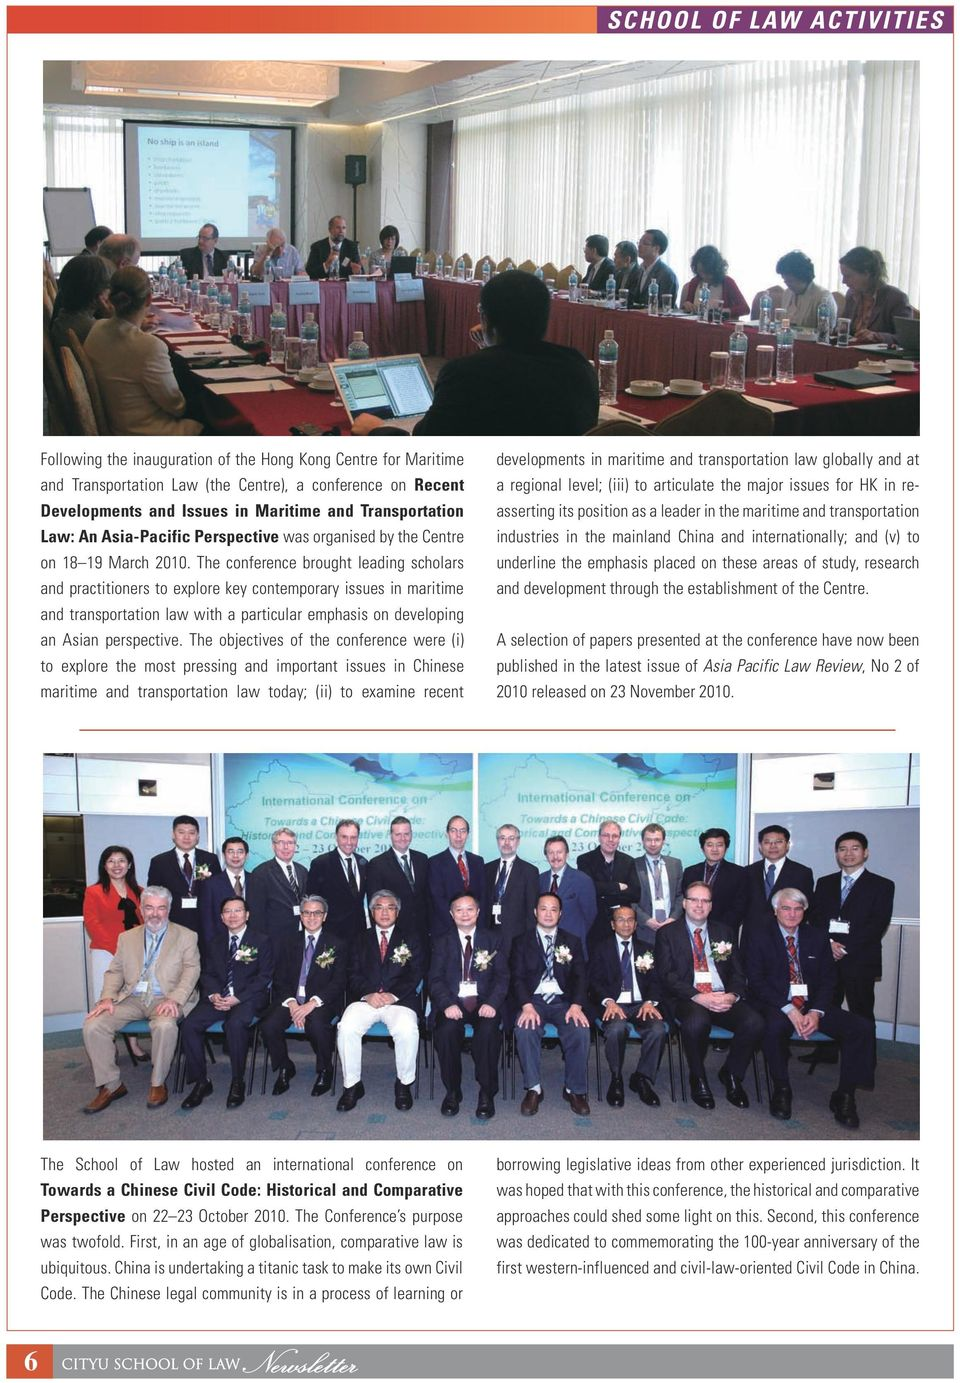 The conference brought leading scholars and practitioners to explore key contemporary issues in maritime and transportation law with a particular emphasis on developing an Asian perspective.